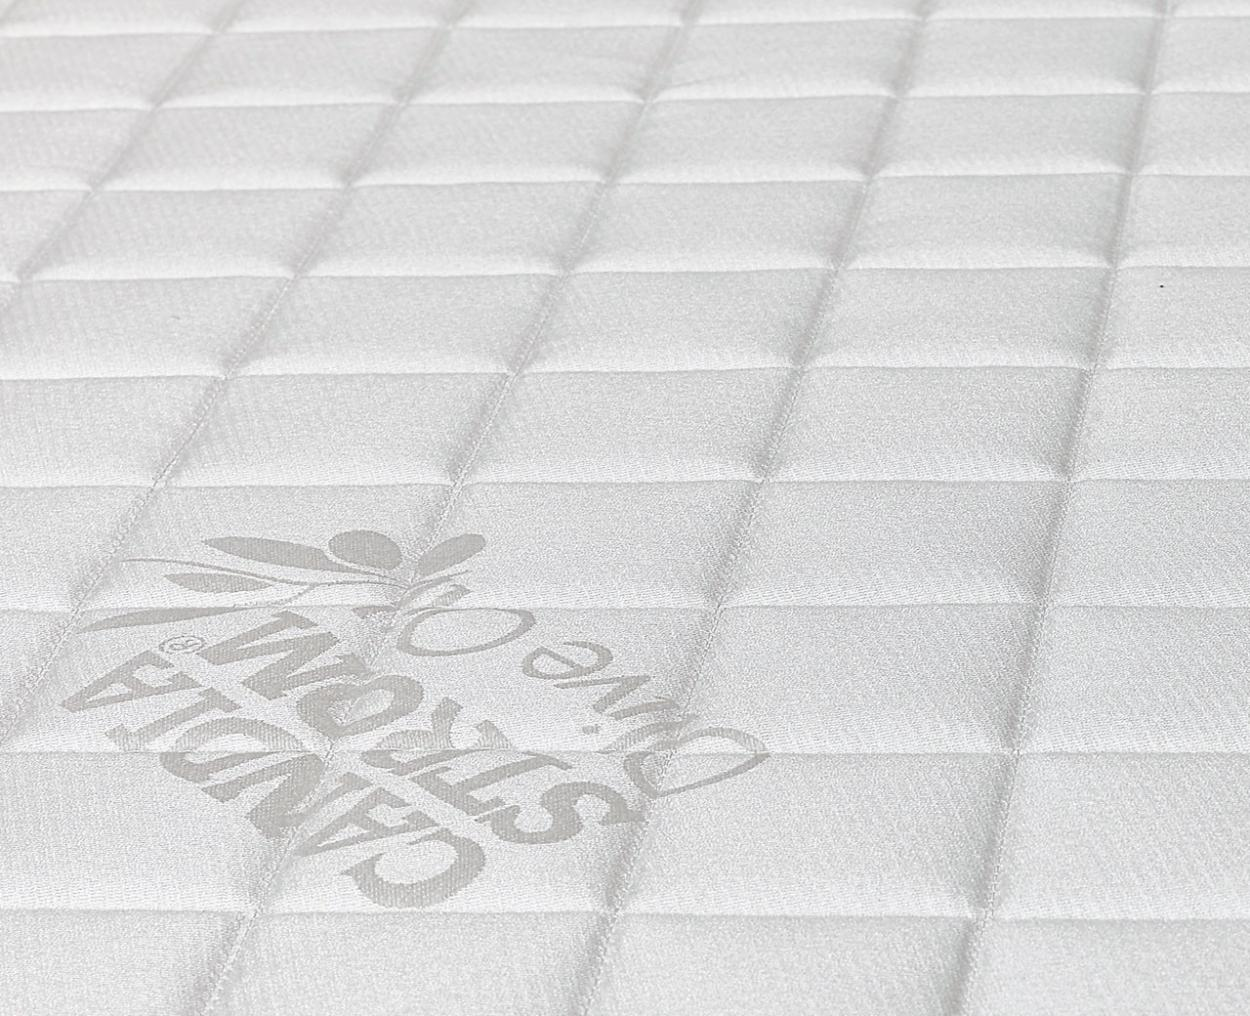 CandiaStrom - Mattress MINOAN CALMNESS - NATUREZZA COLLECTION -  Details